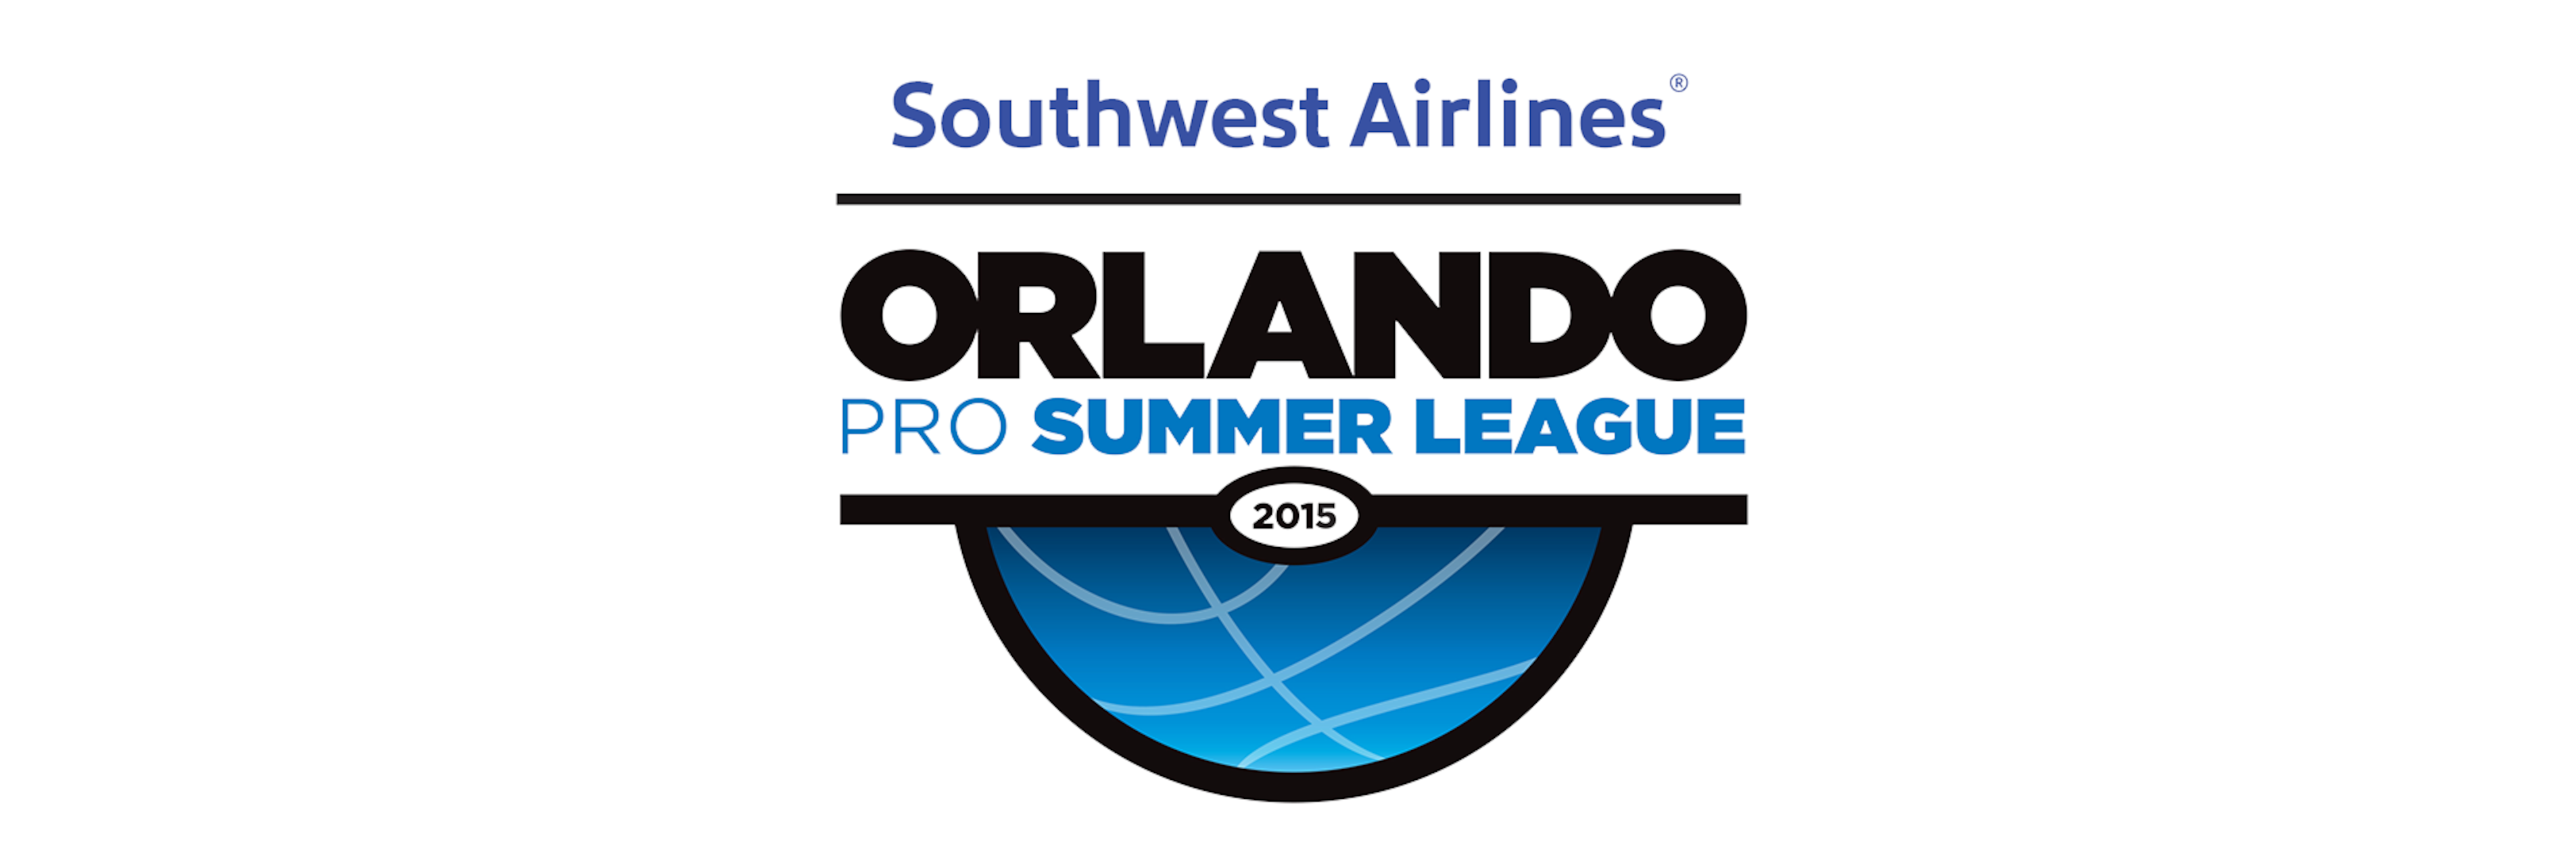 Orlando Pro Summer League Logo